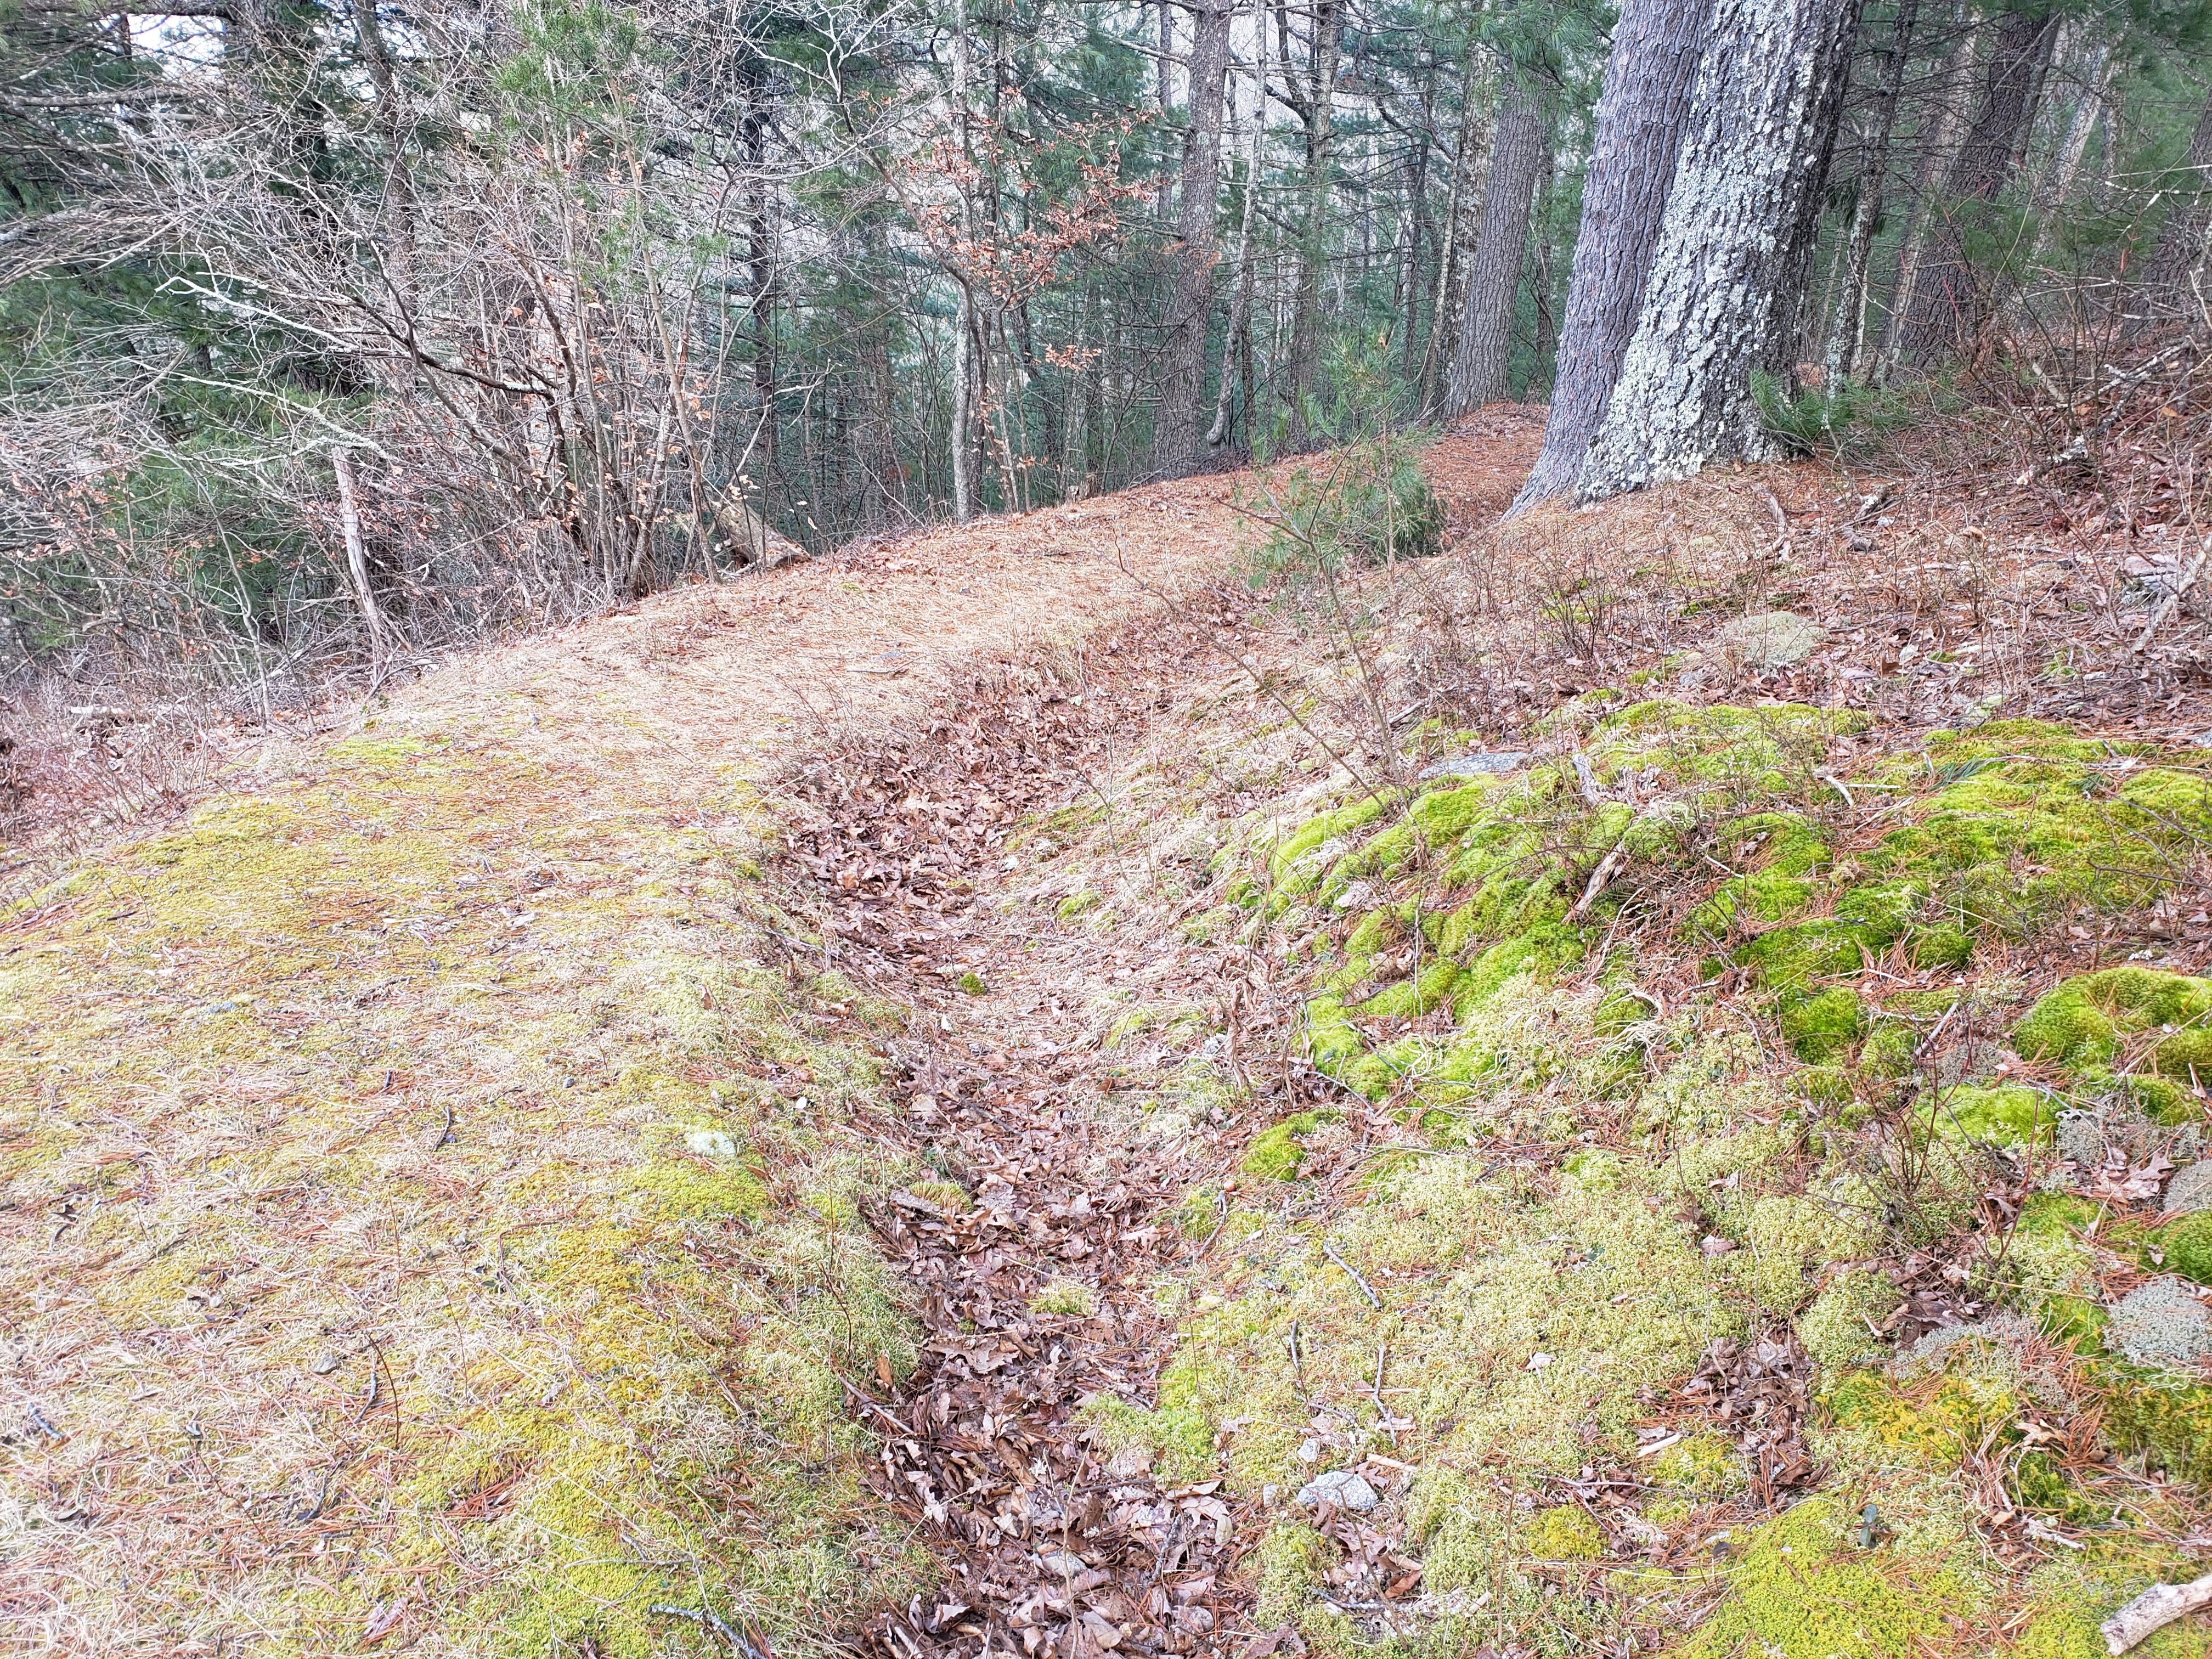 Remains of the trenches